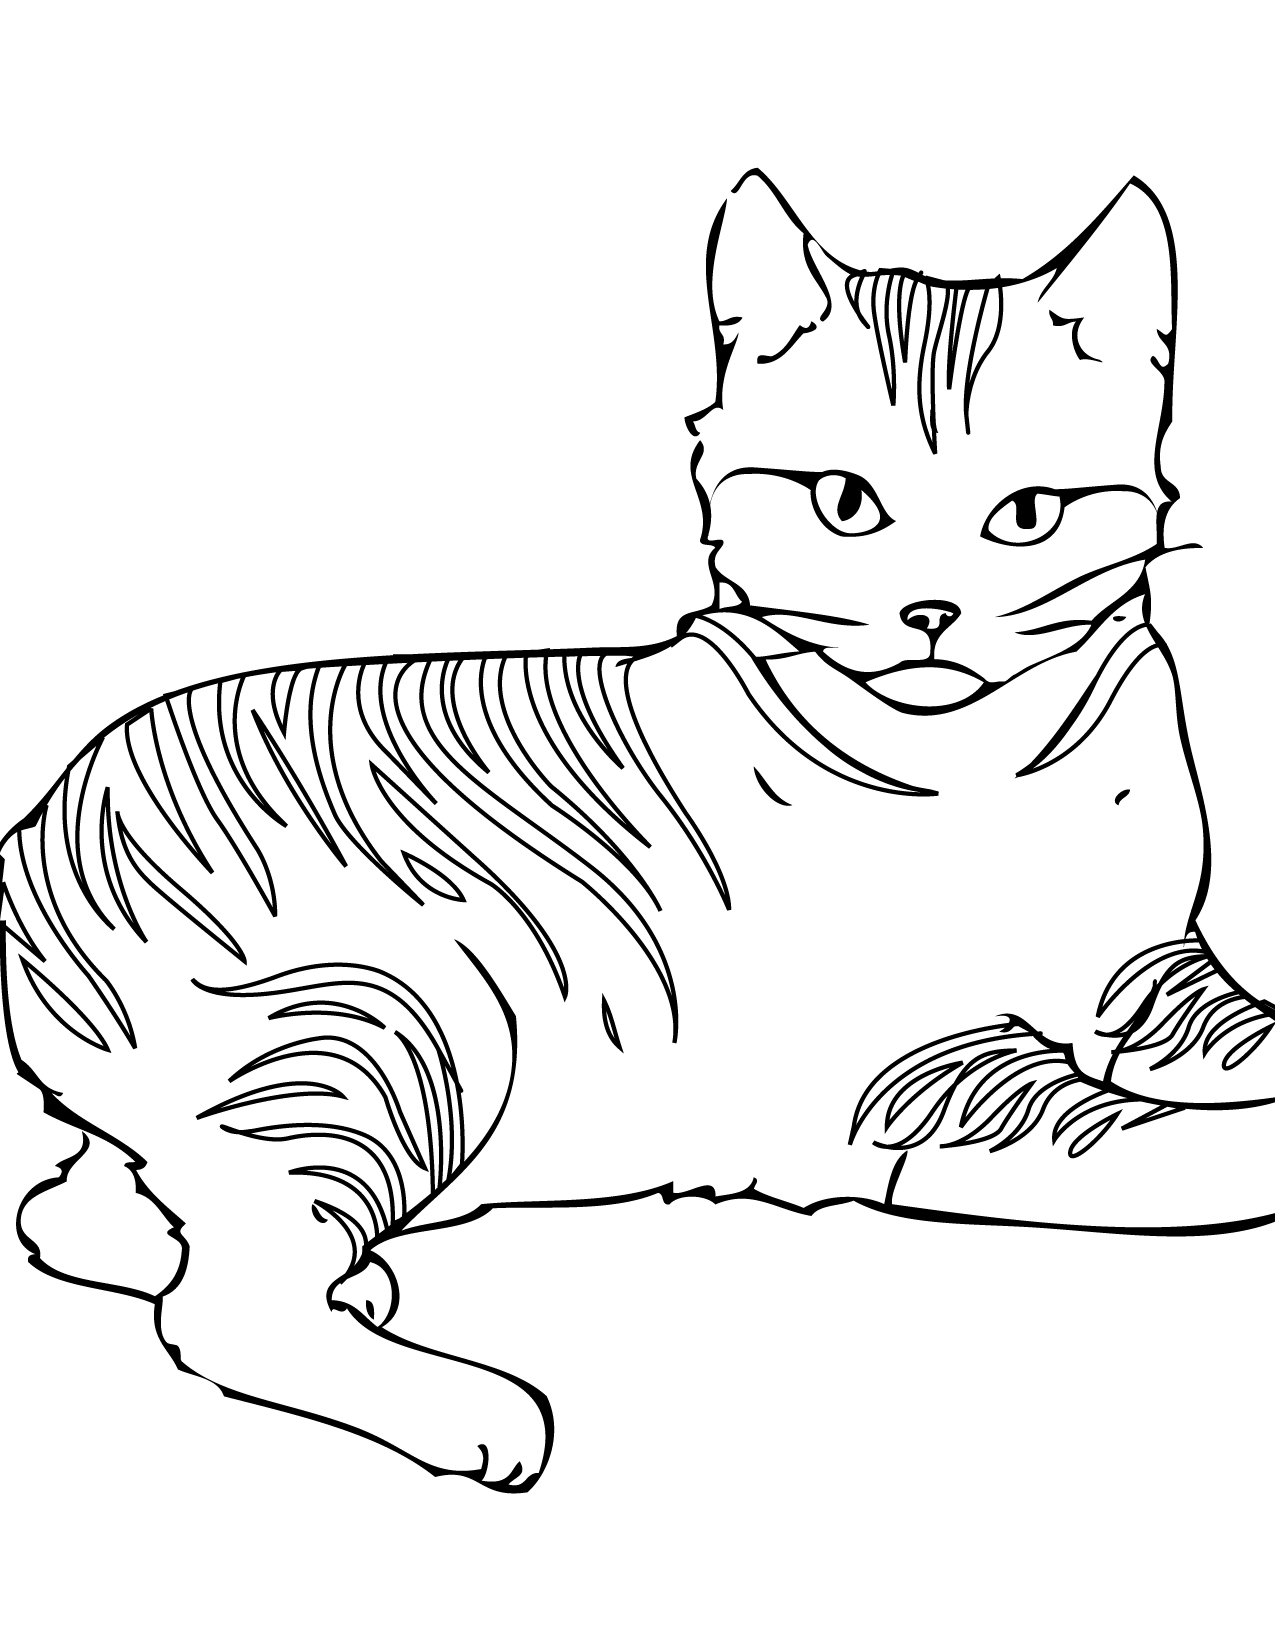 cats pictures to color free printable cat coloring pages for kids pictures to color cats